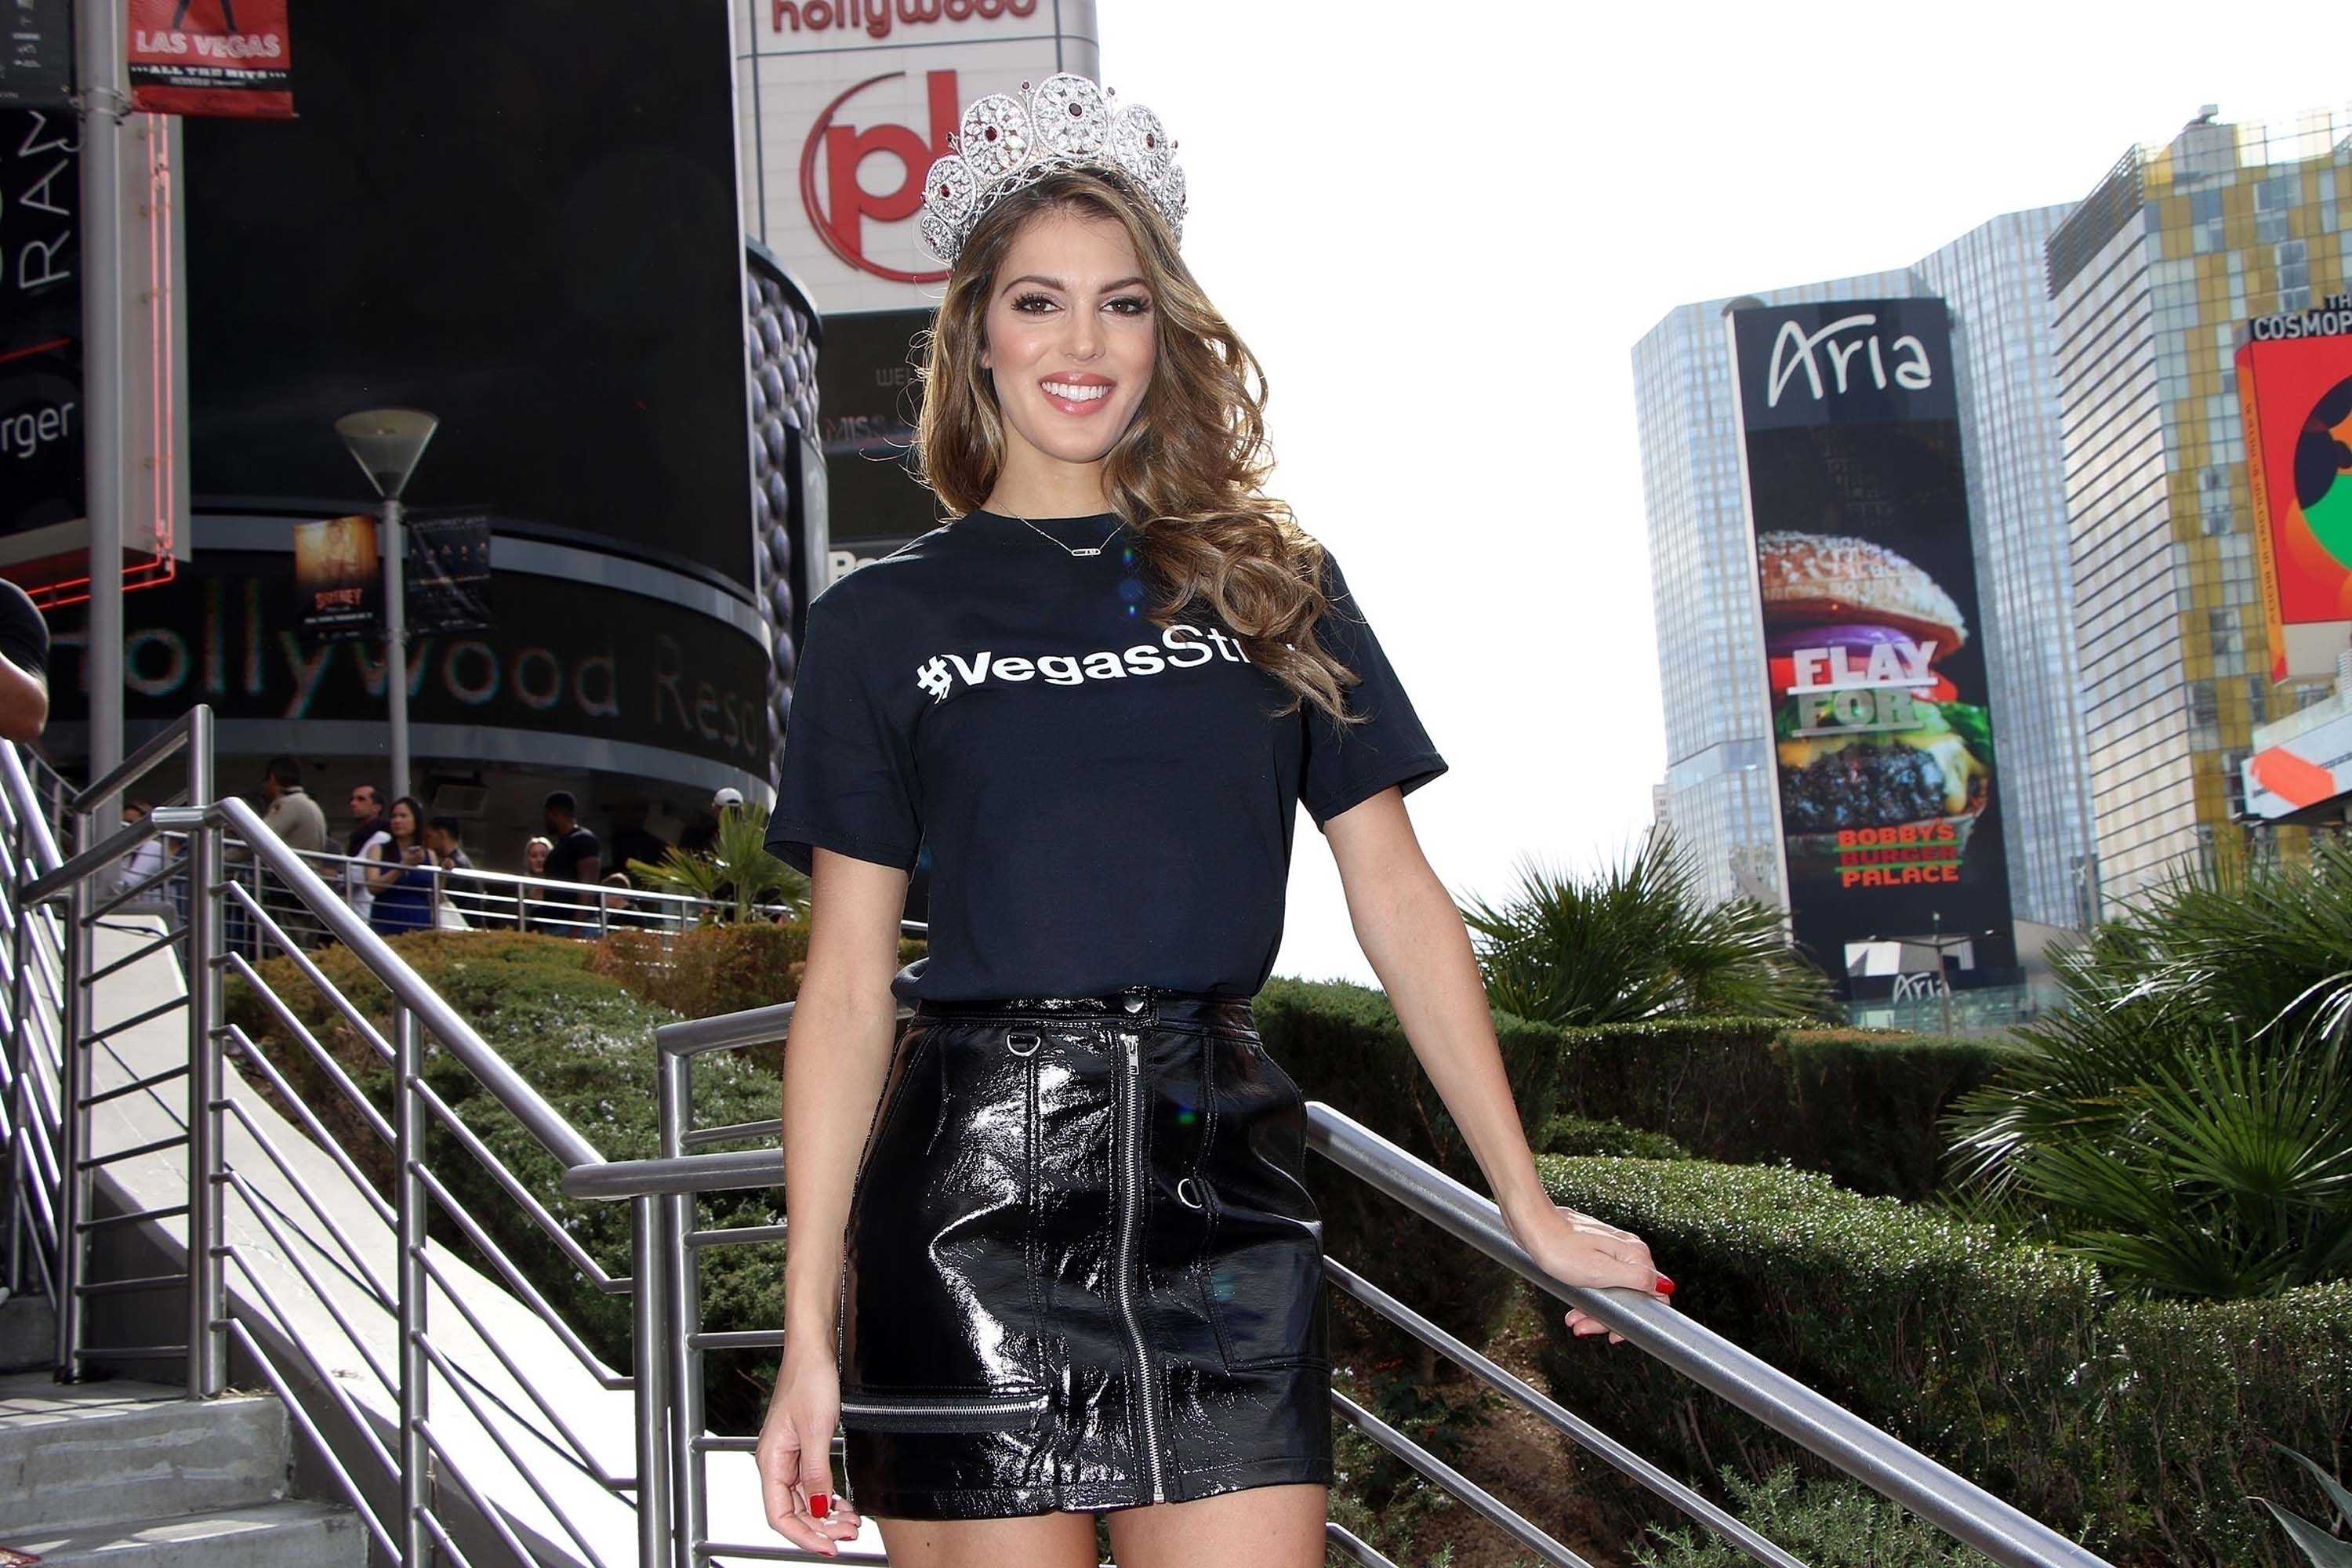 Iris Mittenaere poses as Miss Universe contestants arrive at a welcome event